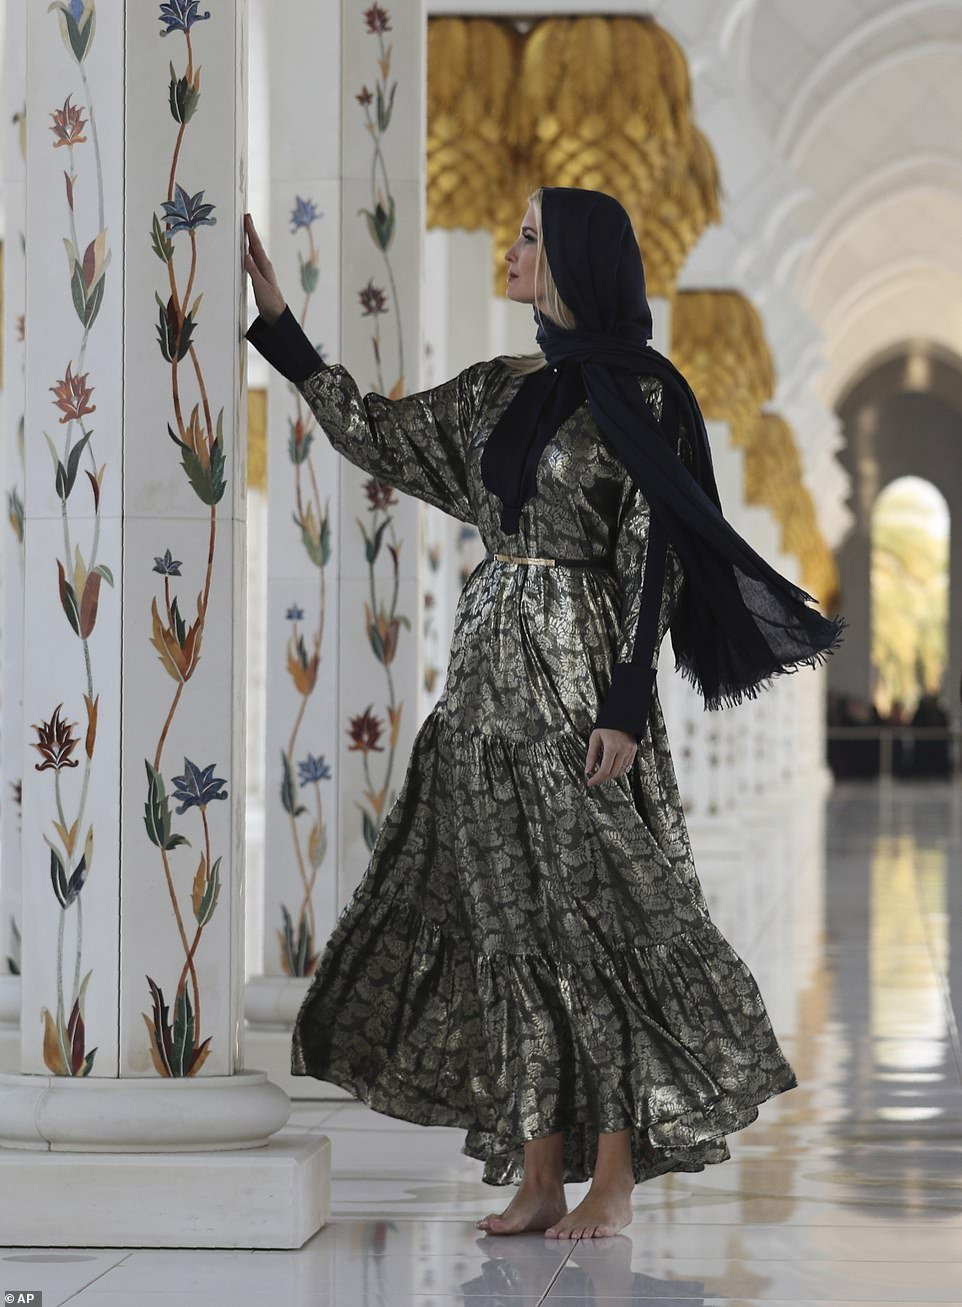 Ivanka Trump arrived in the United Arab Emirates on Saturday ahead of the two-day Global Women´s Forum in Dubai. She is pictured during a tour of Sheikh Zayed Grand Mosque in Abu Dhabi